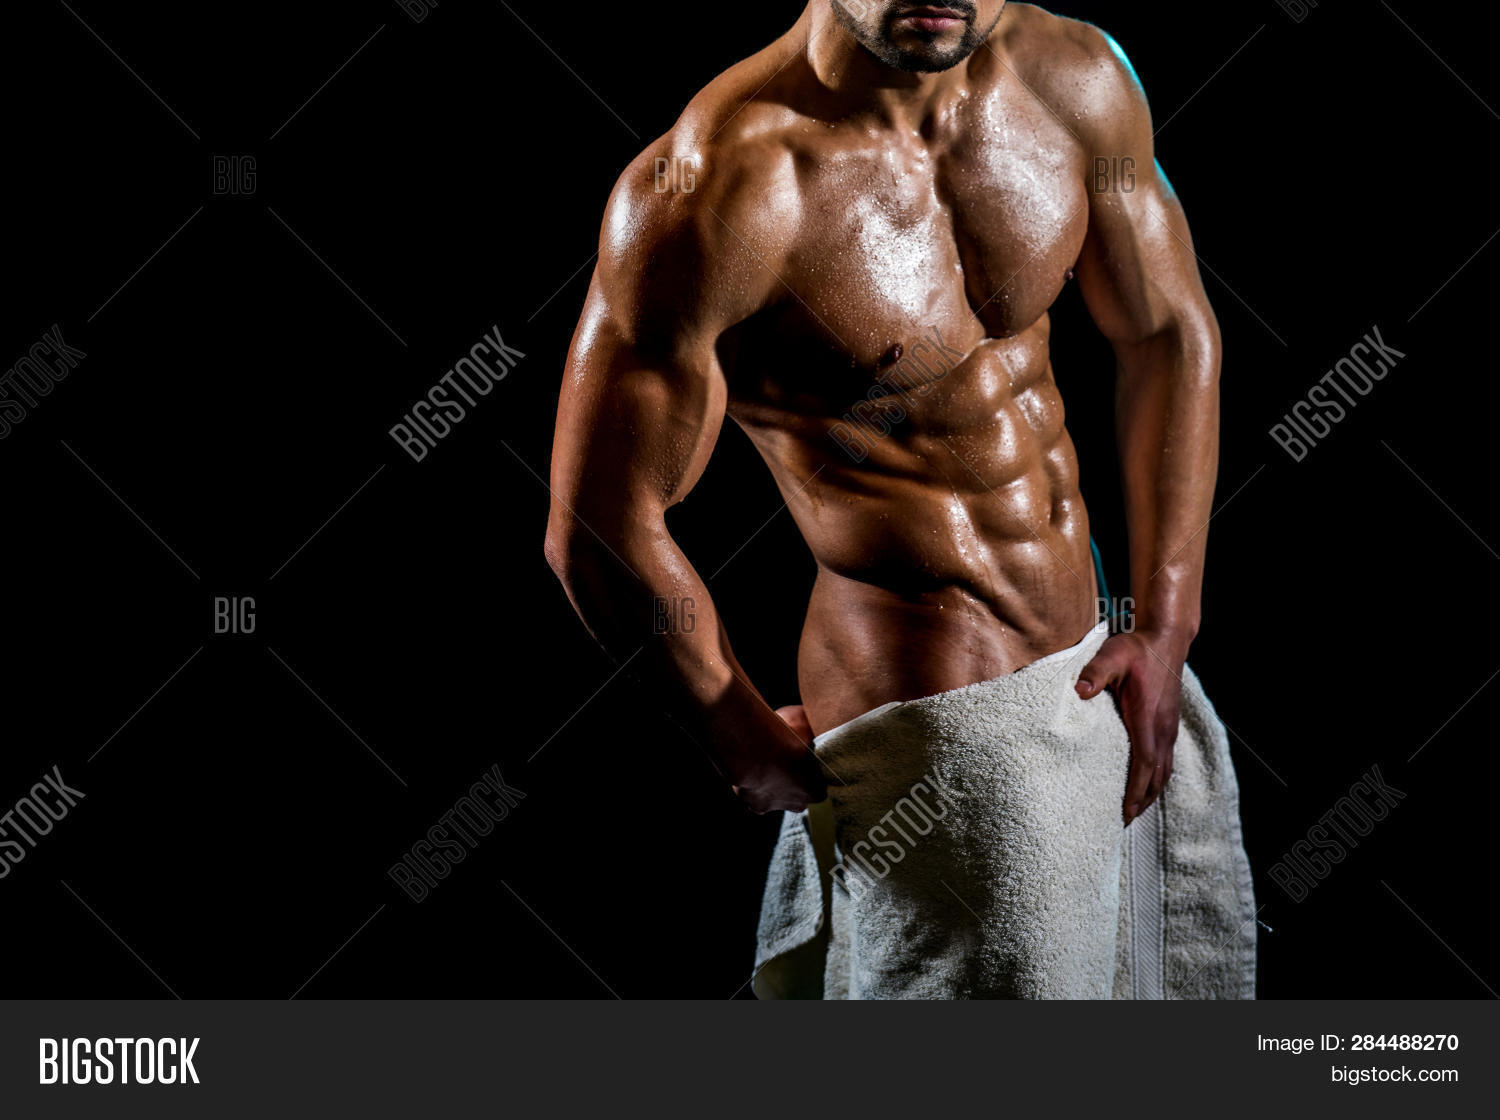 Sexy Towel On Naked Image & Photo (Free Trial)   Bigstock